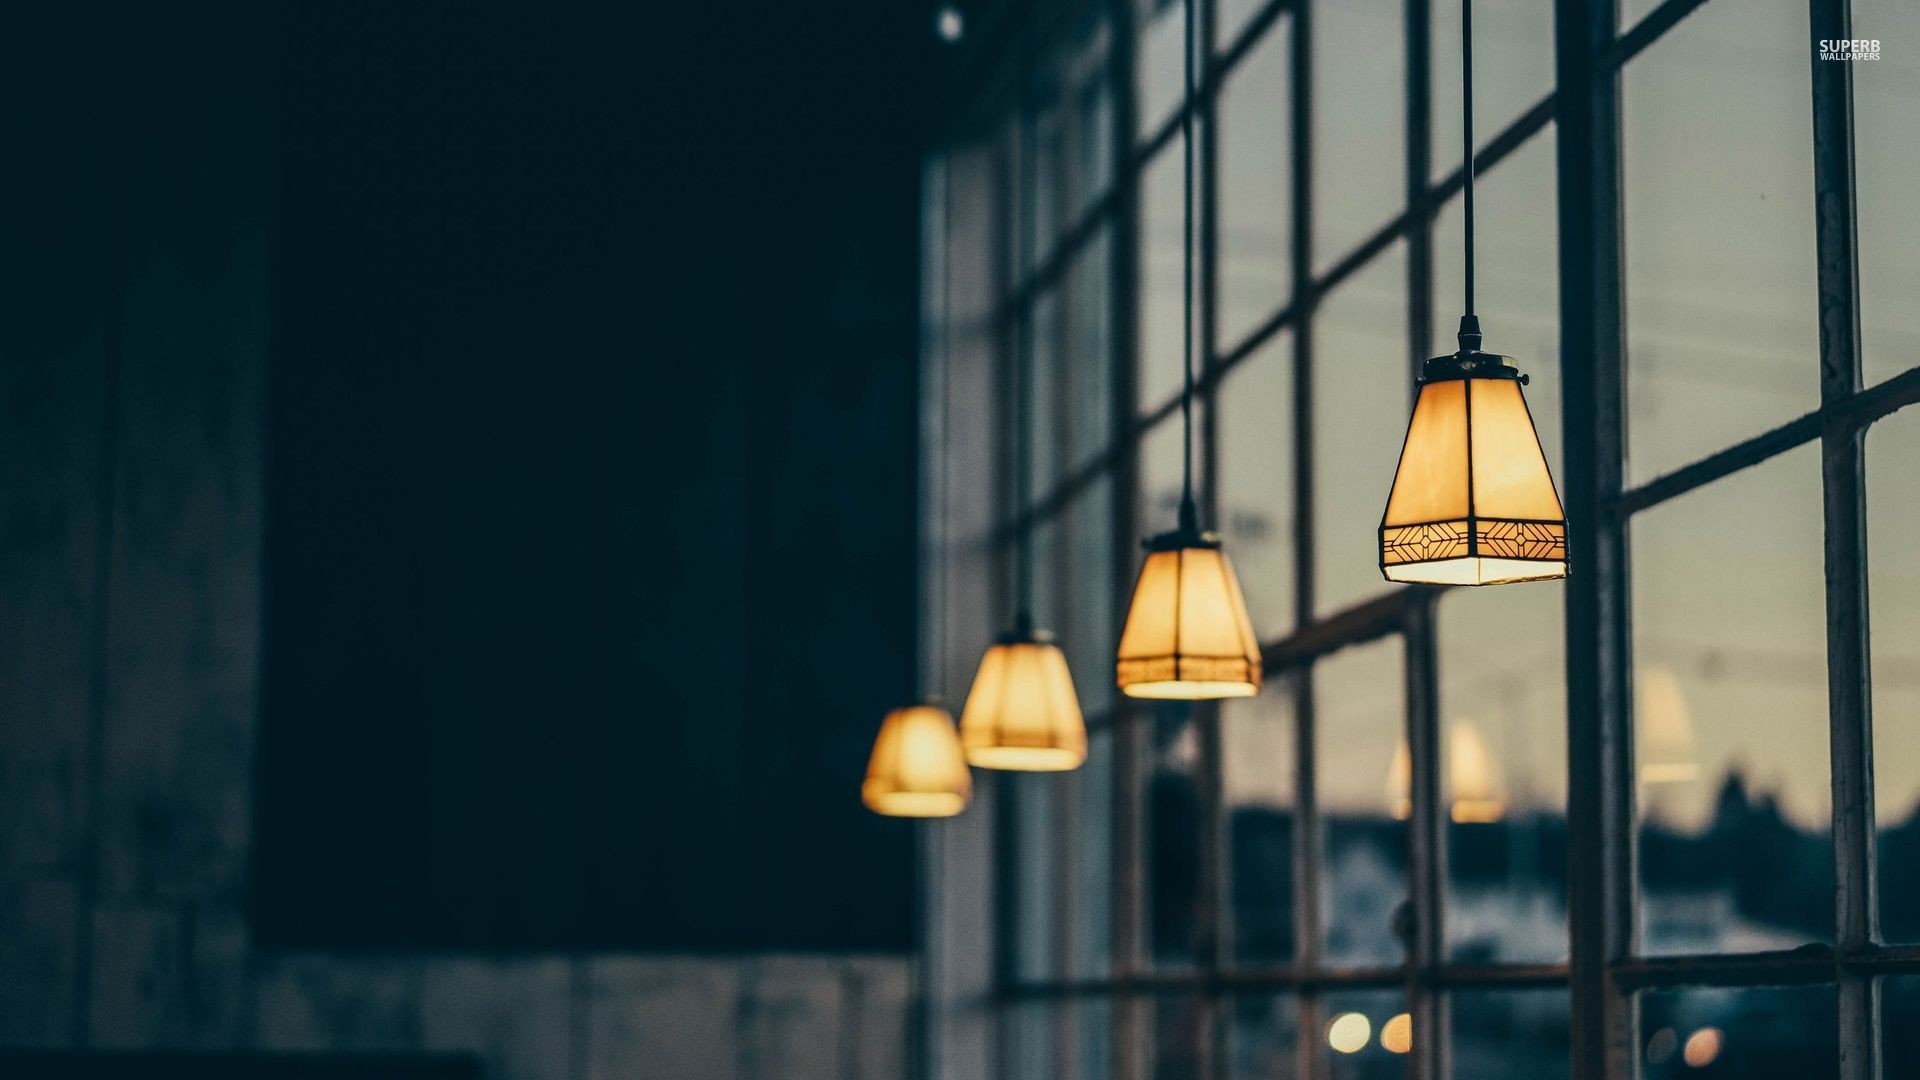 … vintage lamps in the window wallpaper mixhd wallpapers …